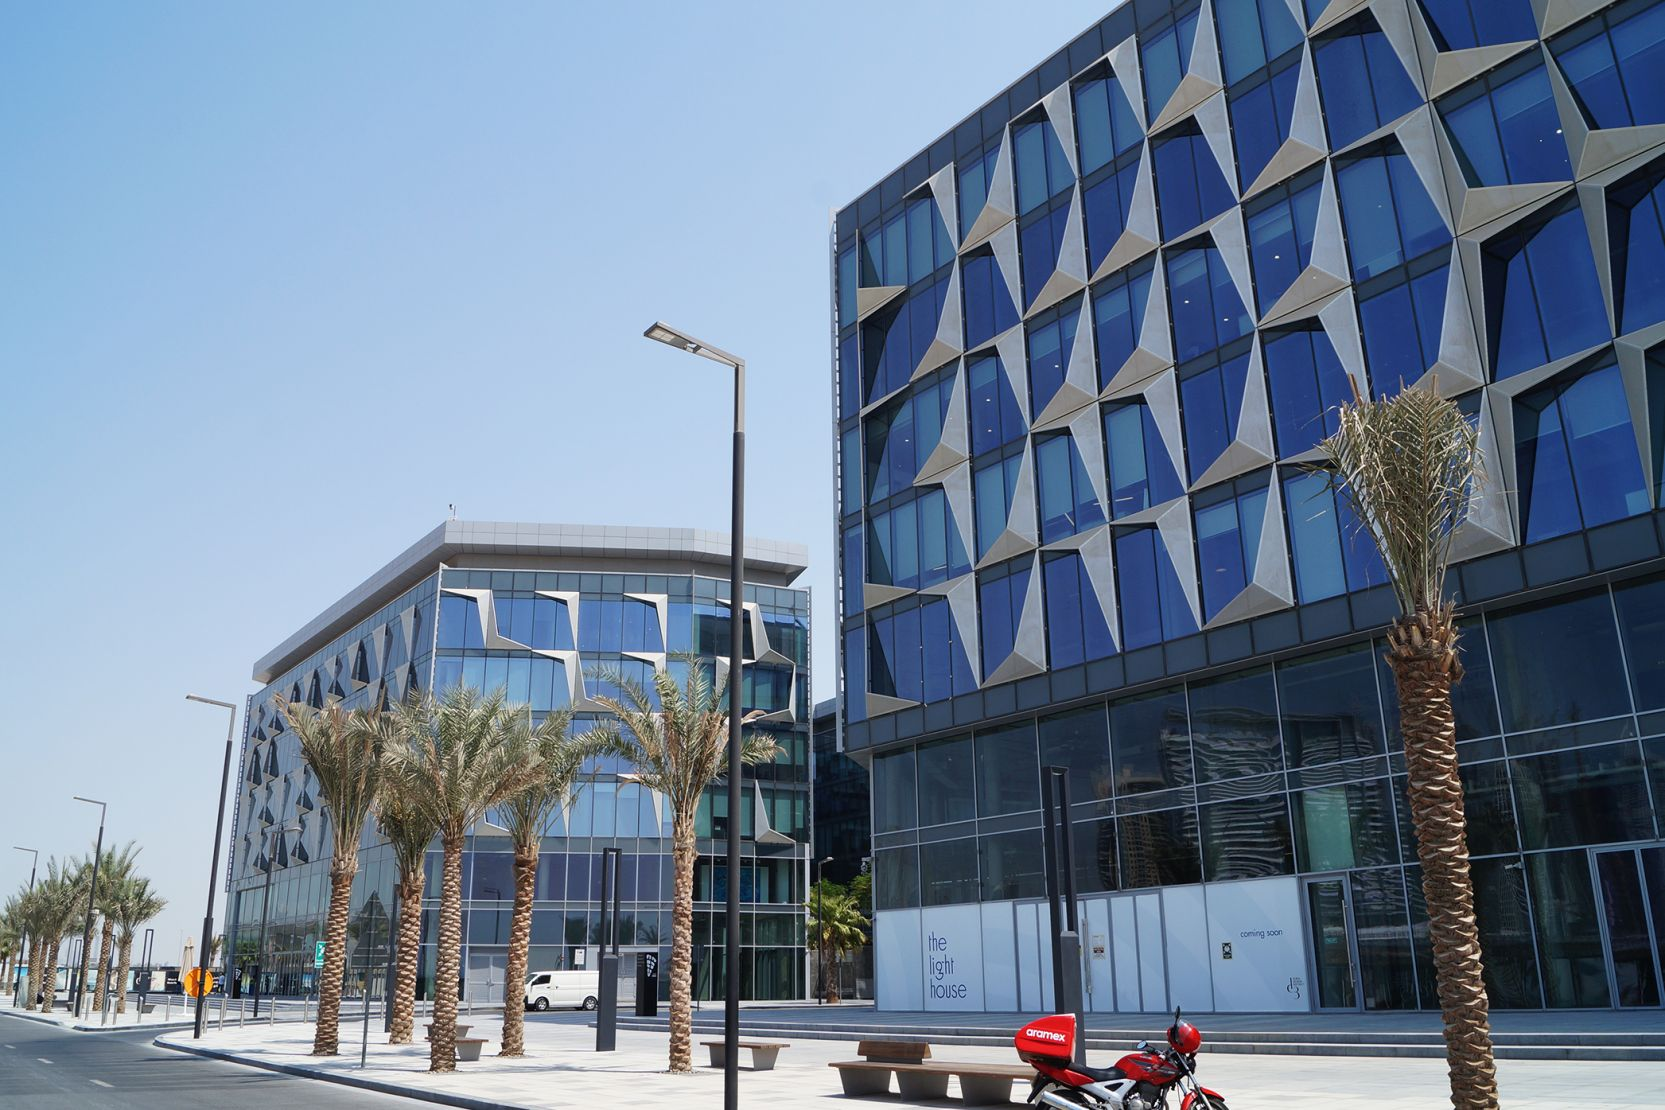 Dubai Design District Dubai, Dubai Design District Guide | Propsearch Dubai